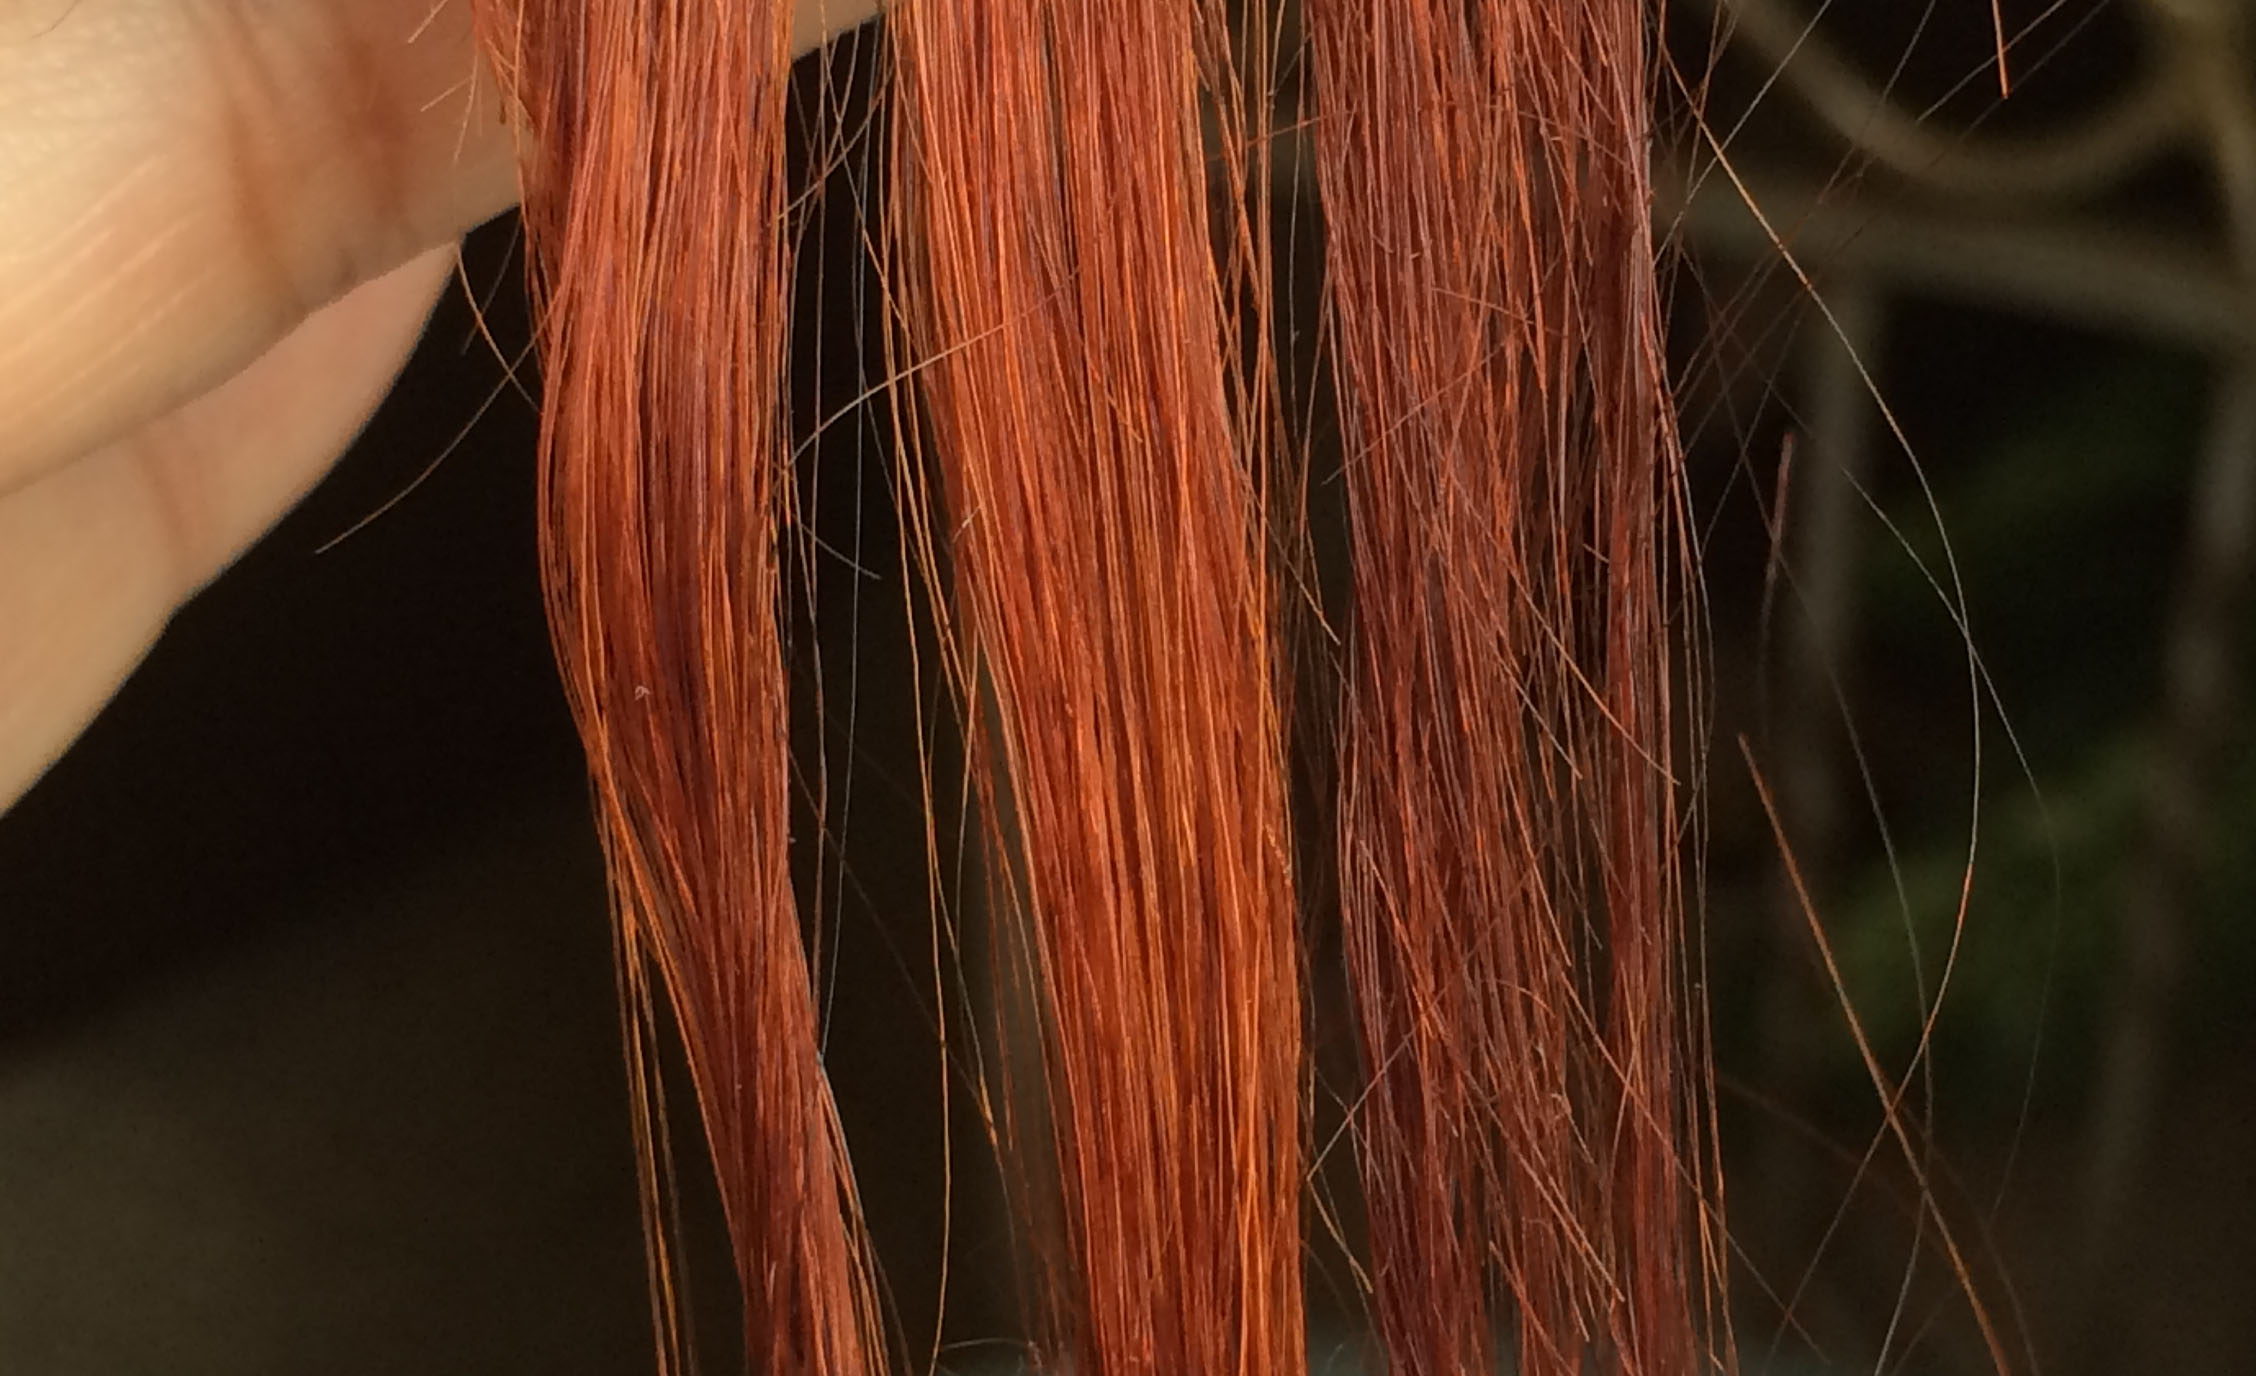 remove-henna-herbal-hair-dye.jpg